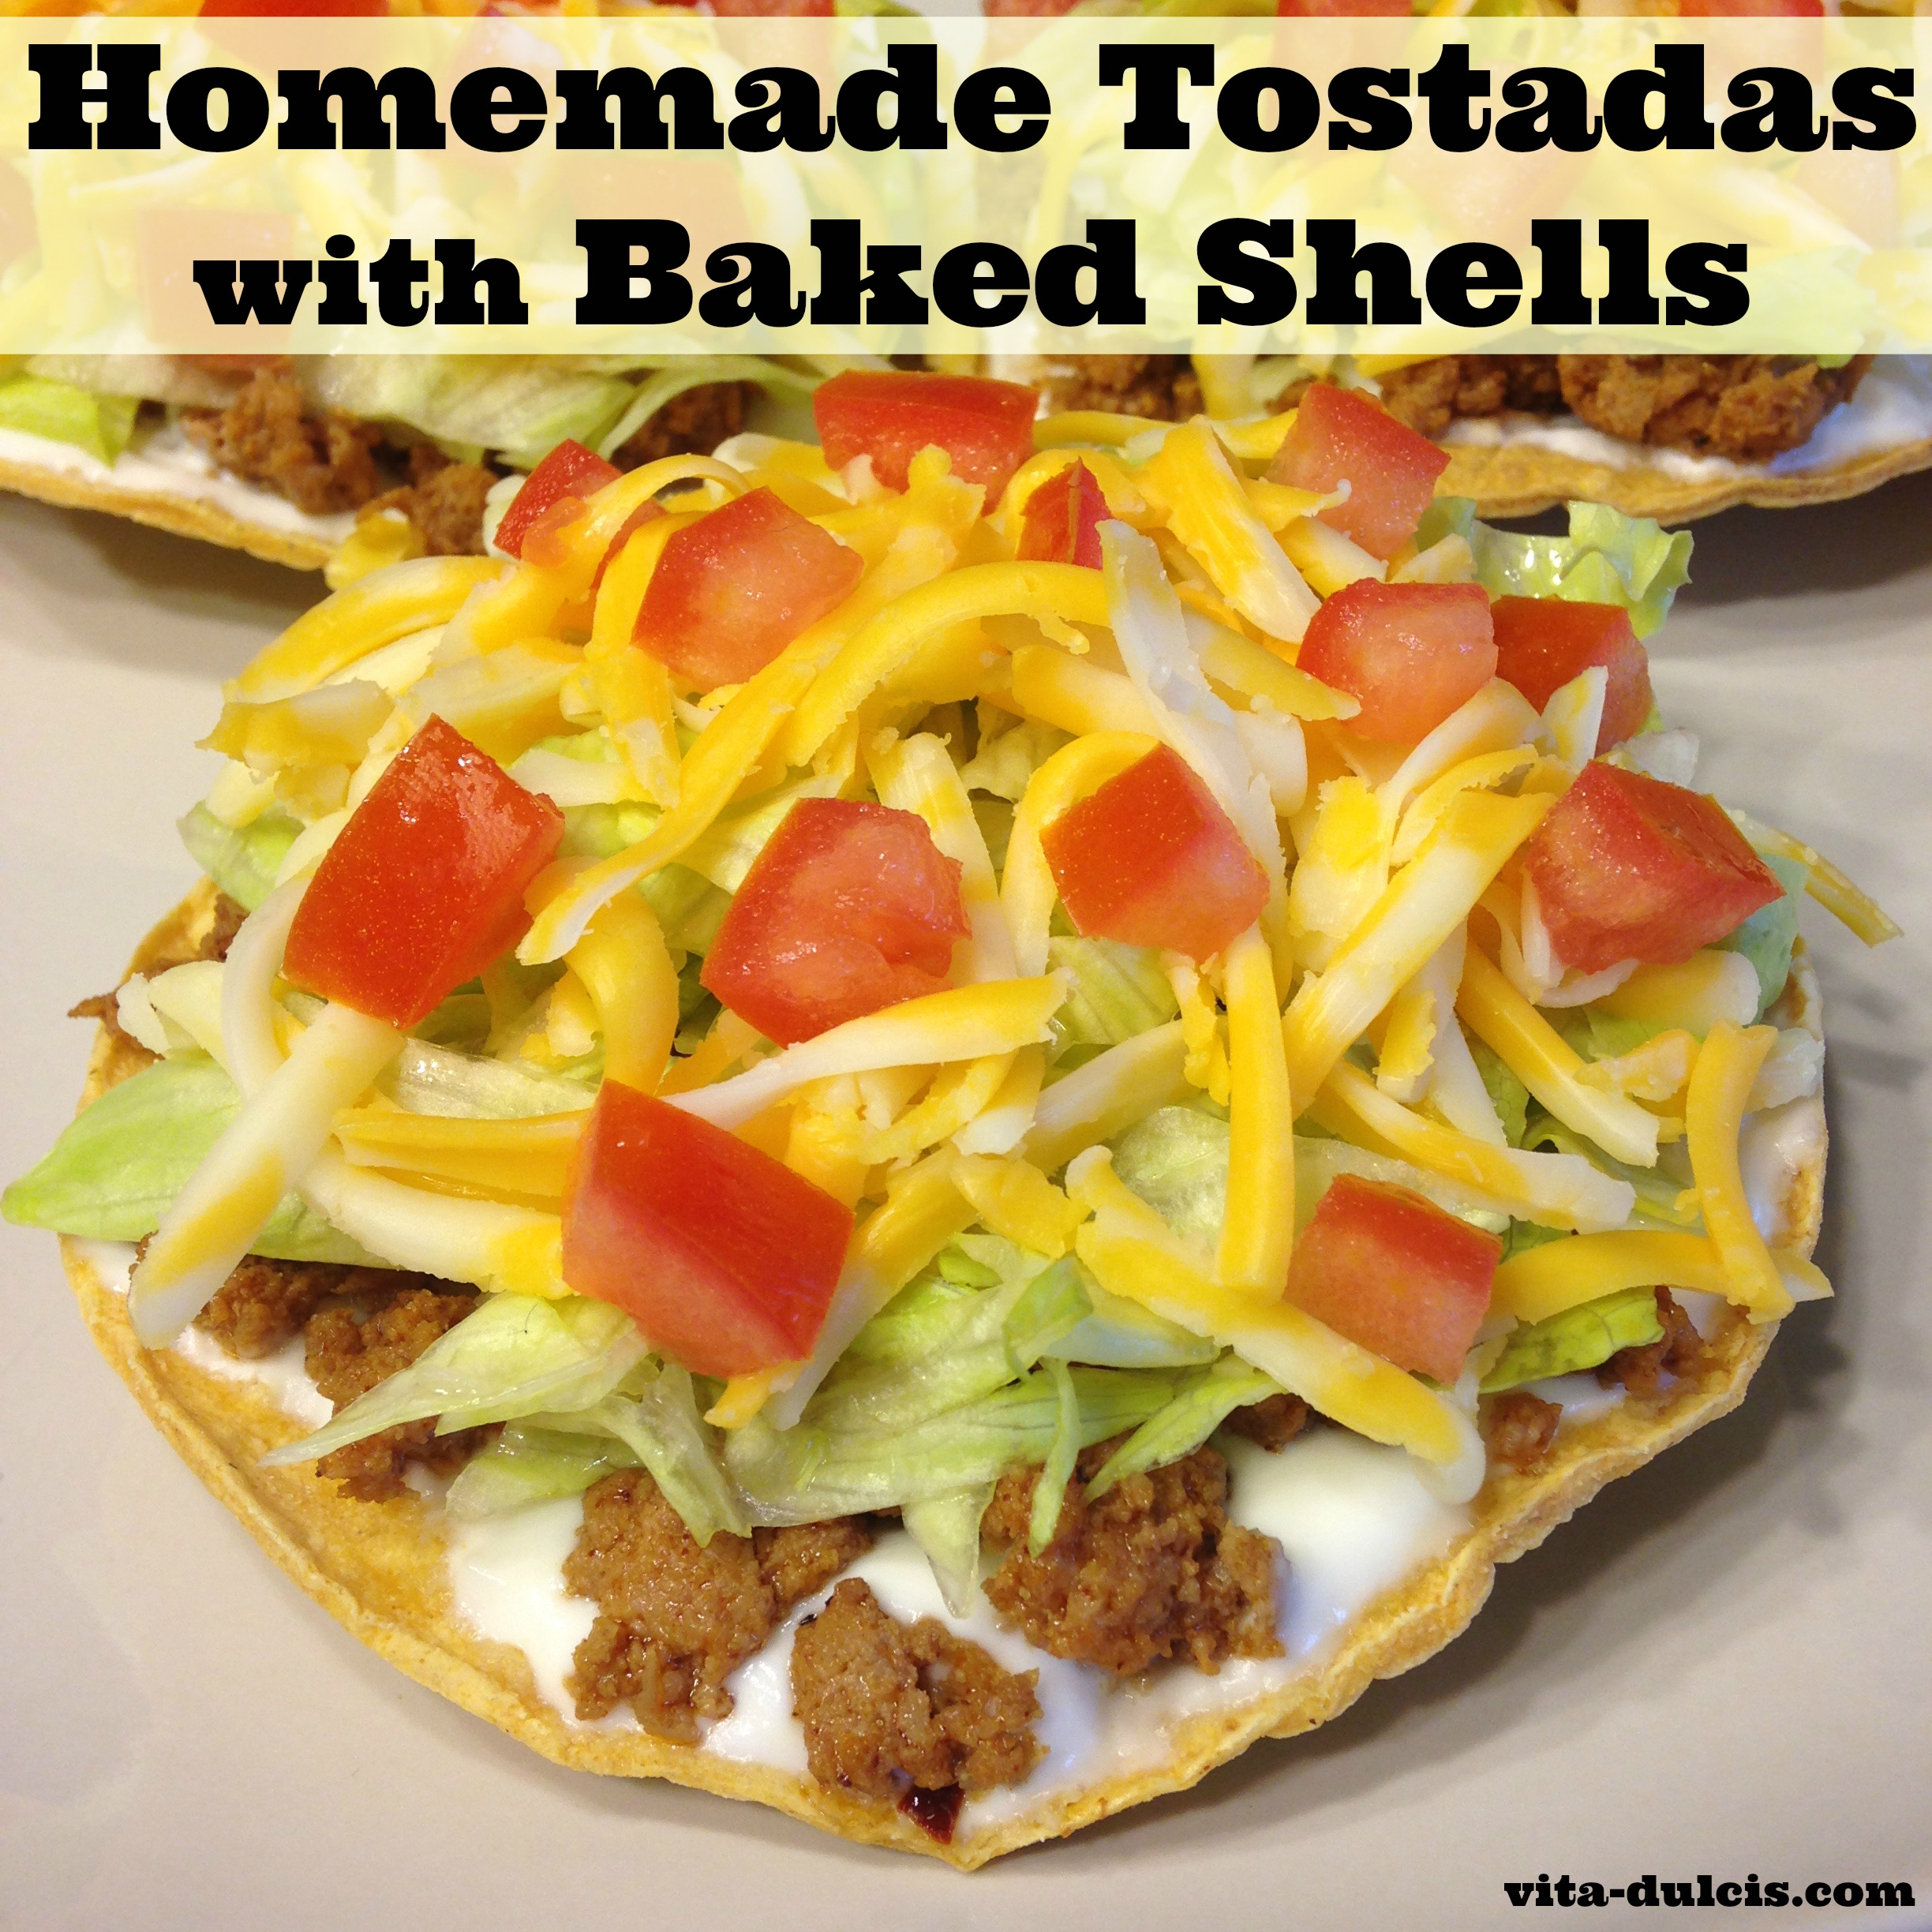 Homemade Tostadas with Baked Shells | Vita Dulcis